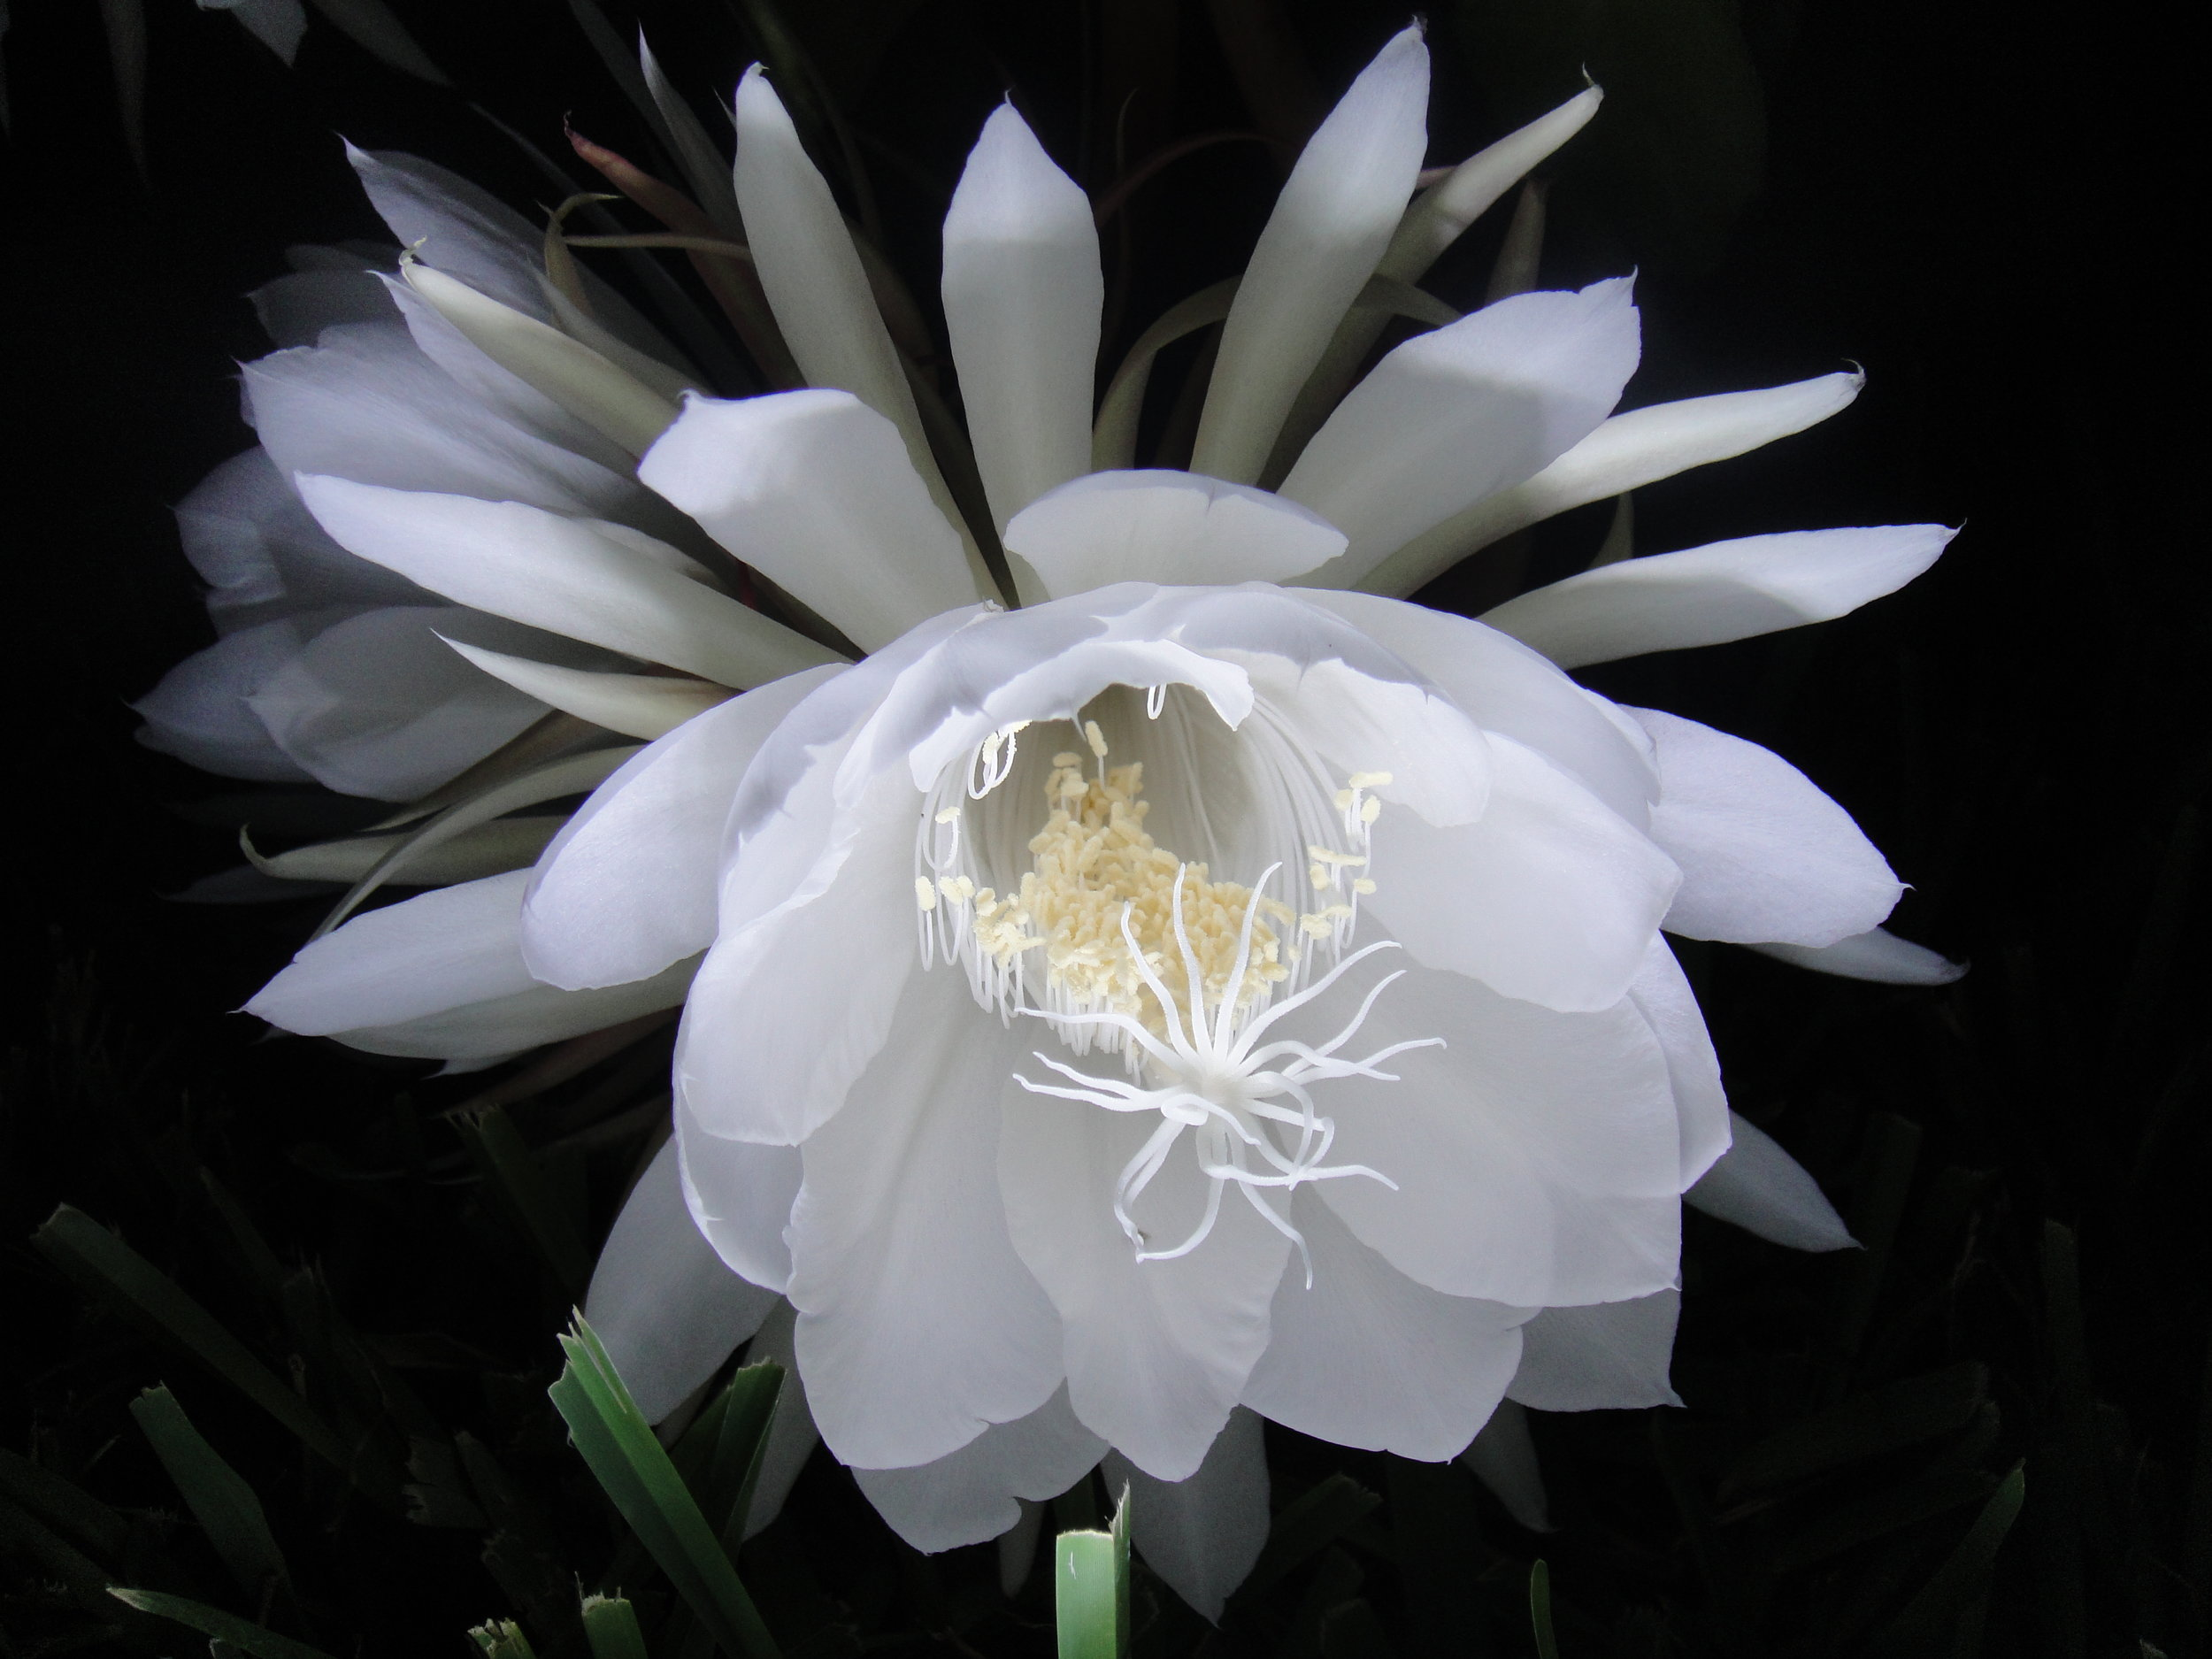 Night_Blooming_Cereus_Blossom.JPG